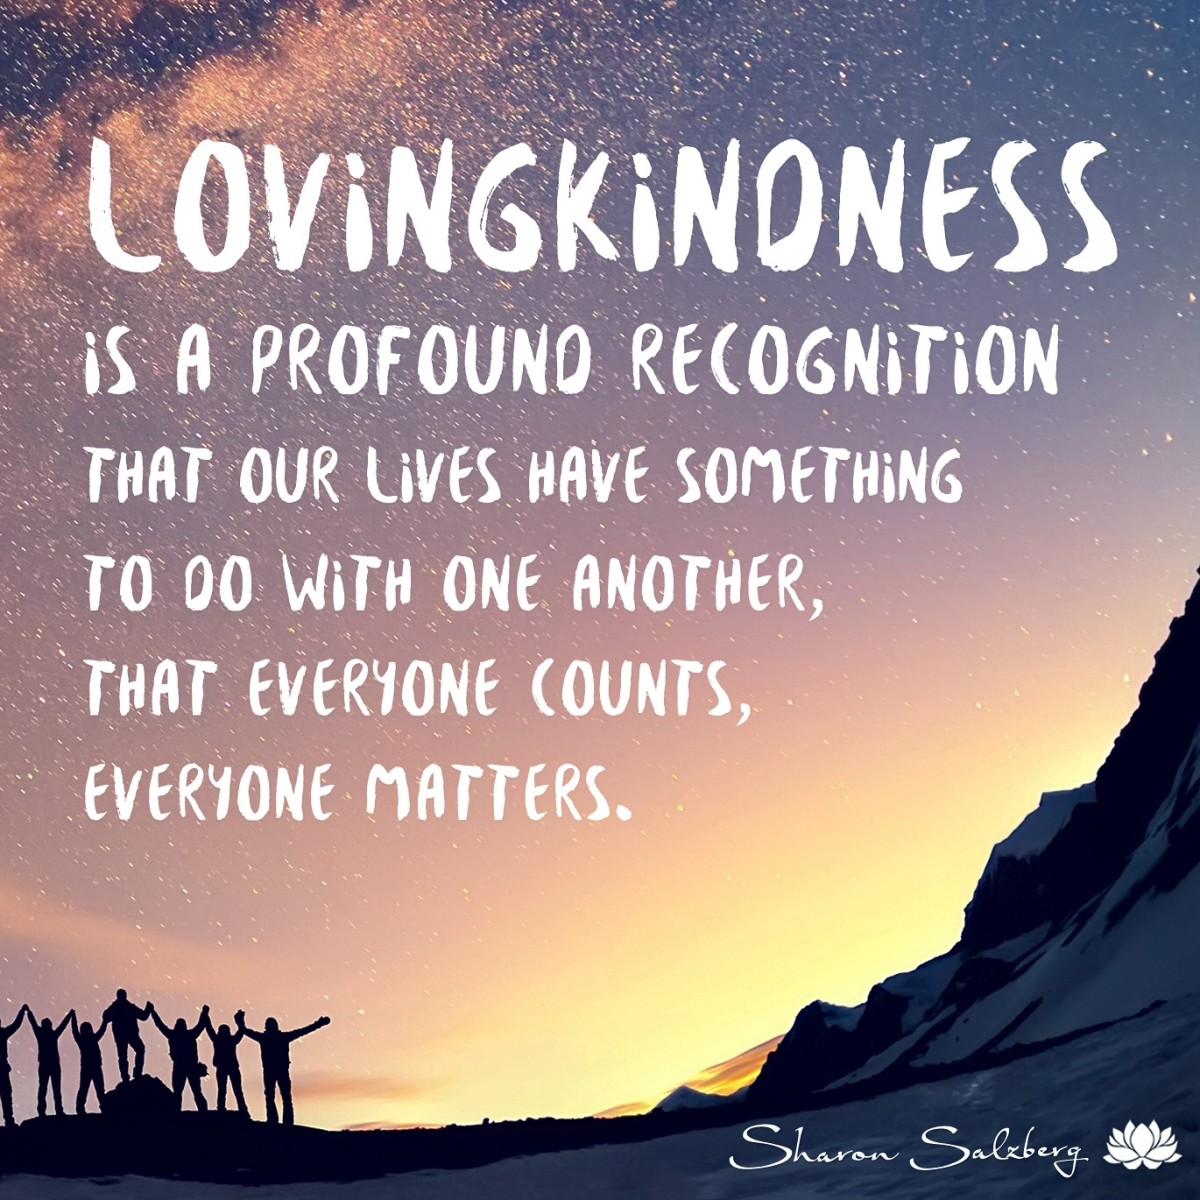 To Love Kindness